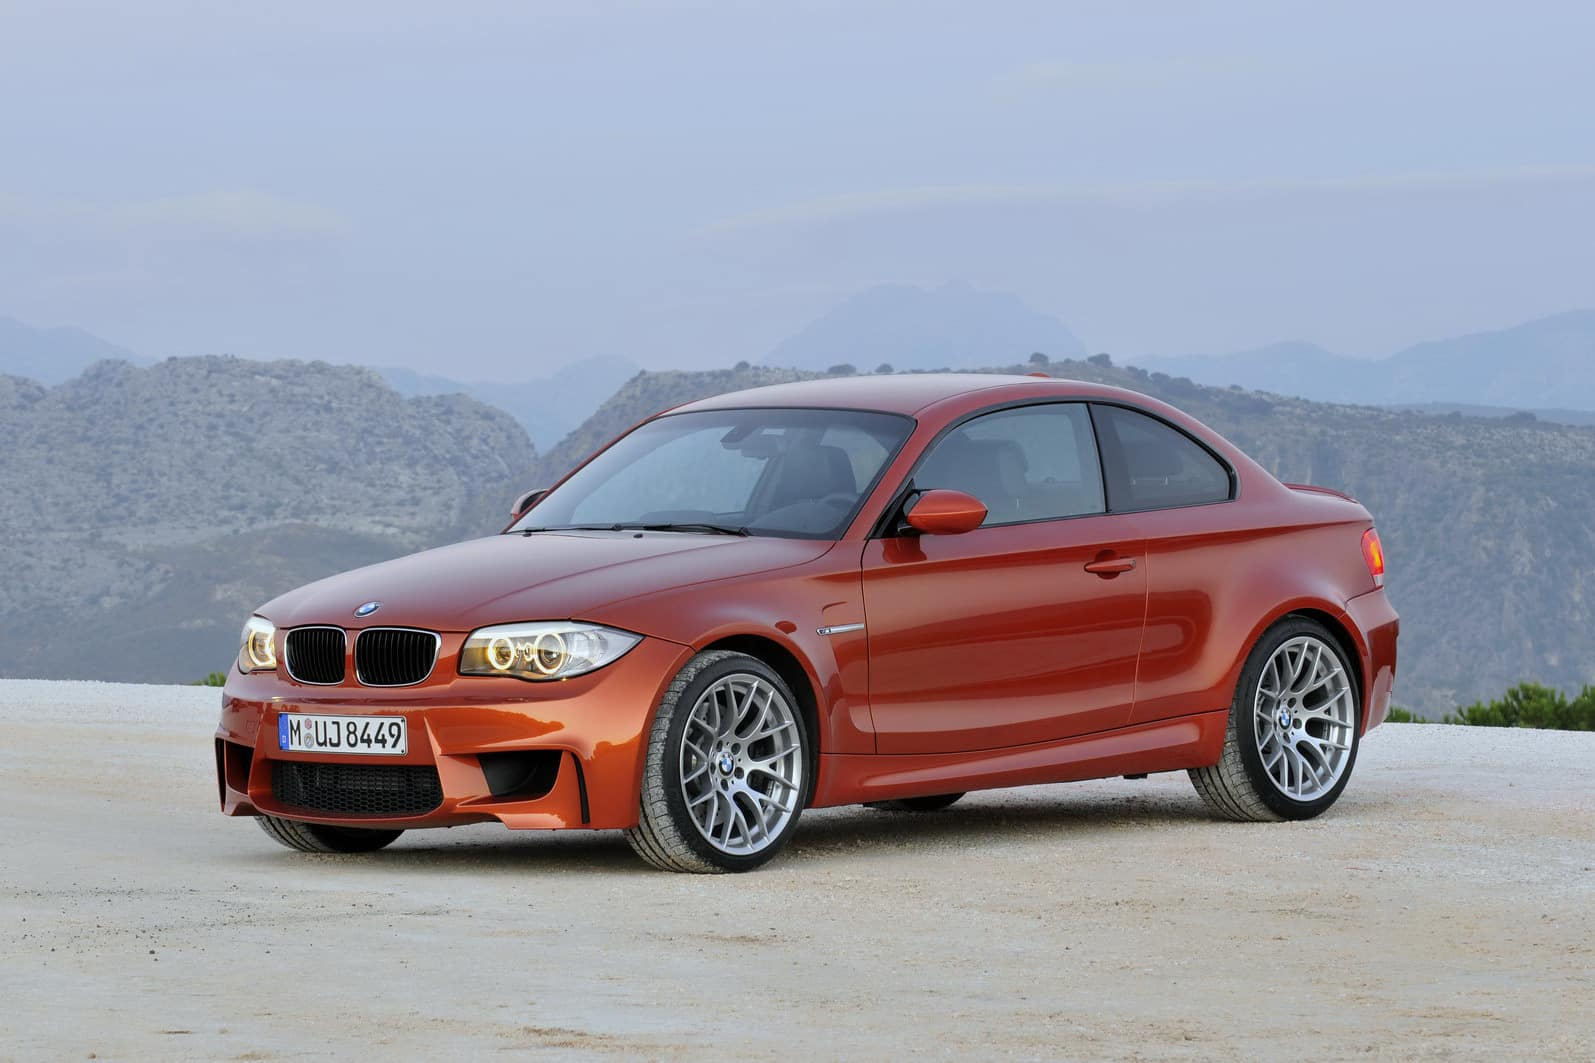 BMW unveiled the 2012 1-Series M Coupe